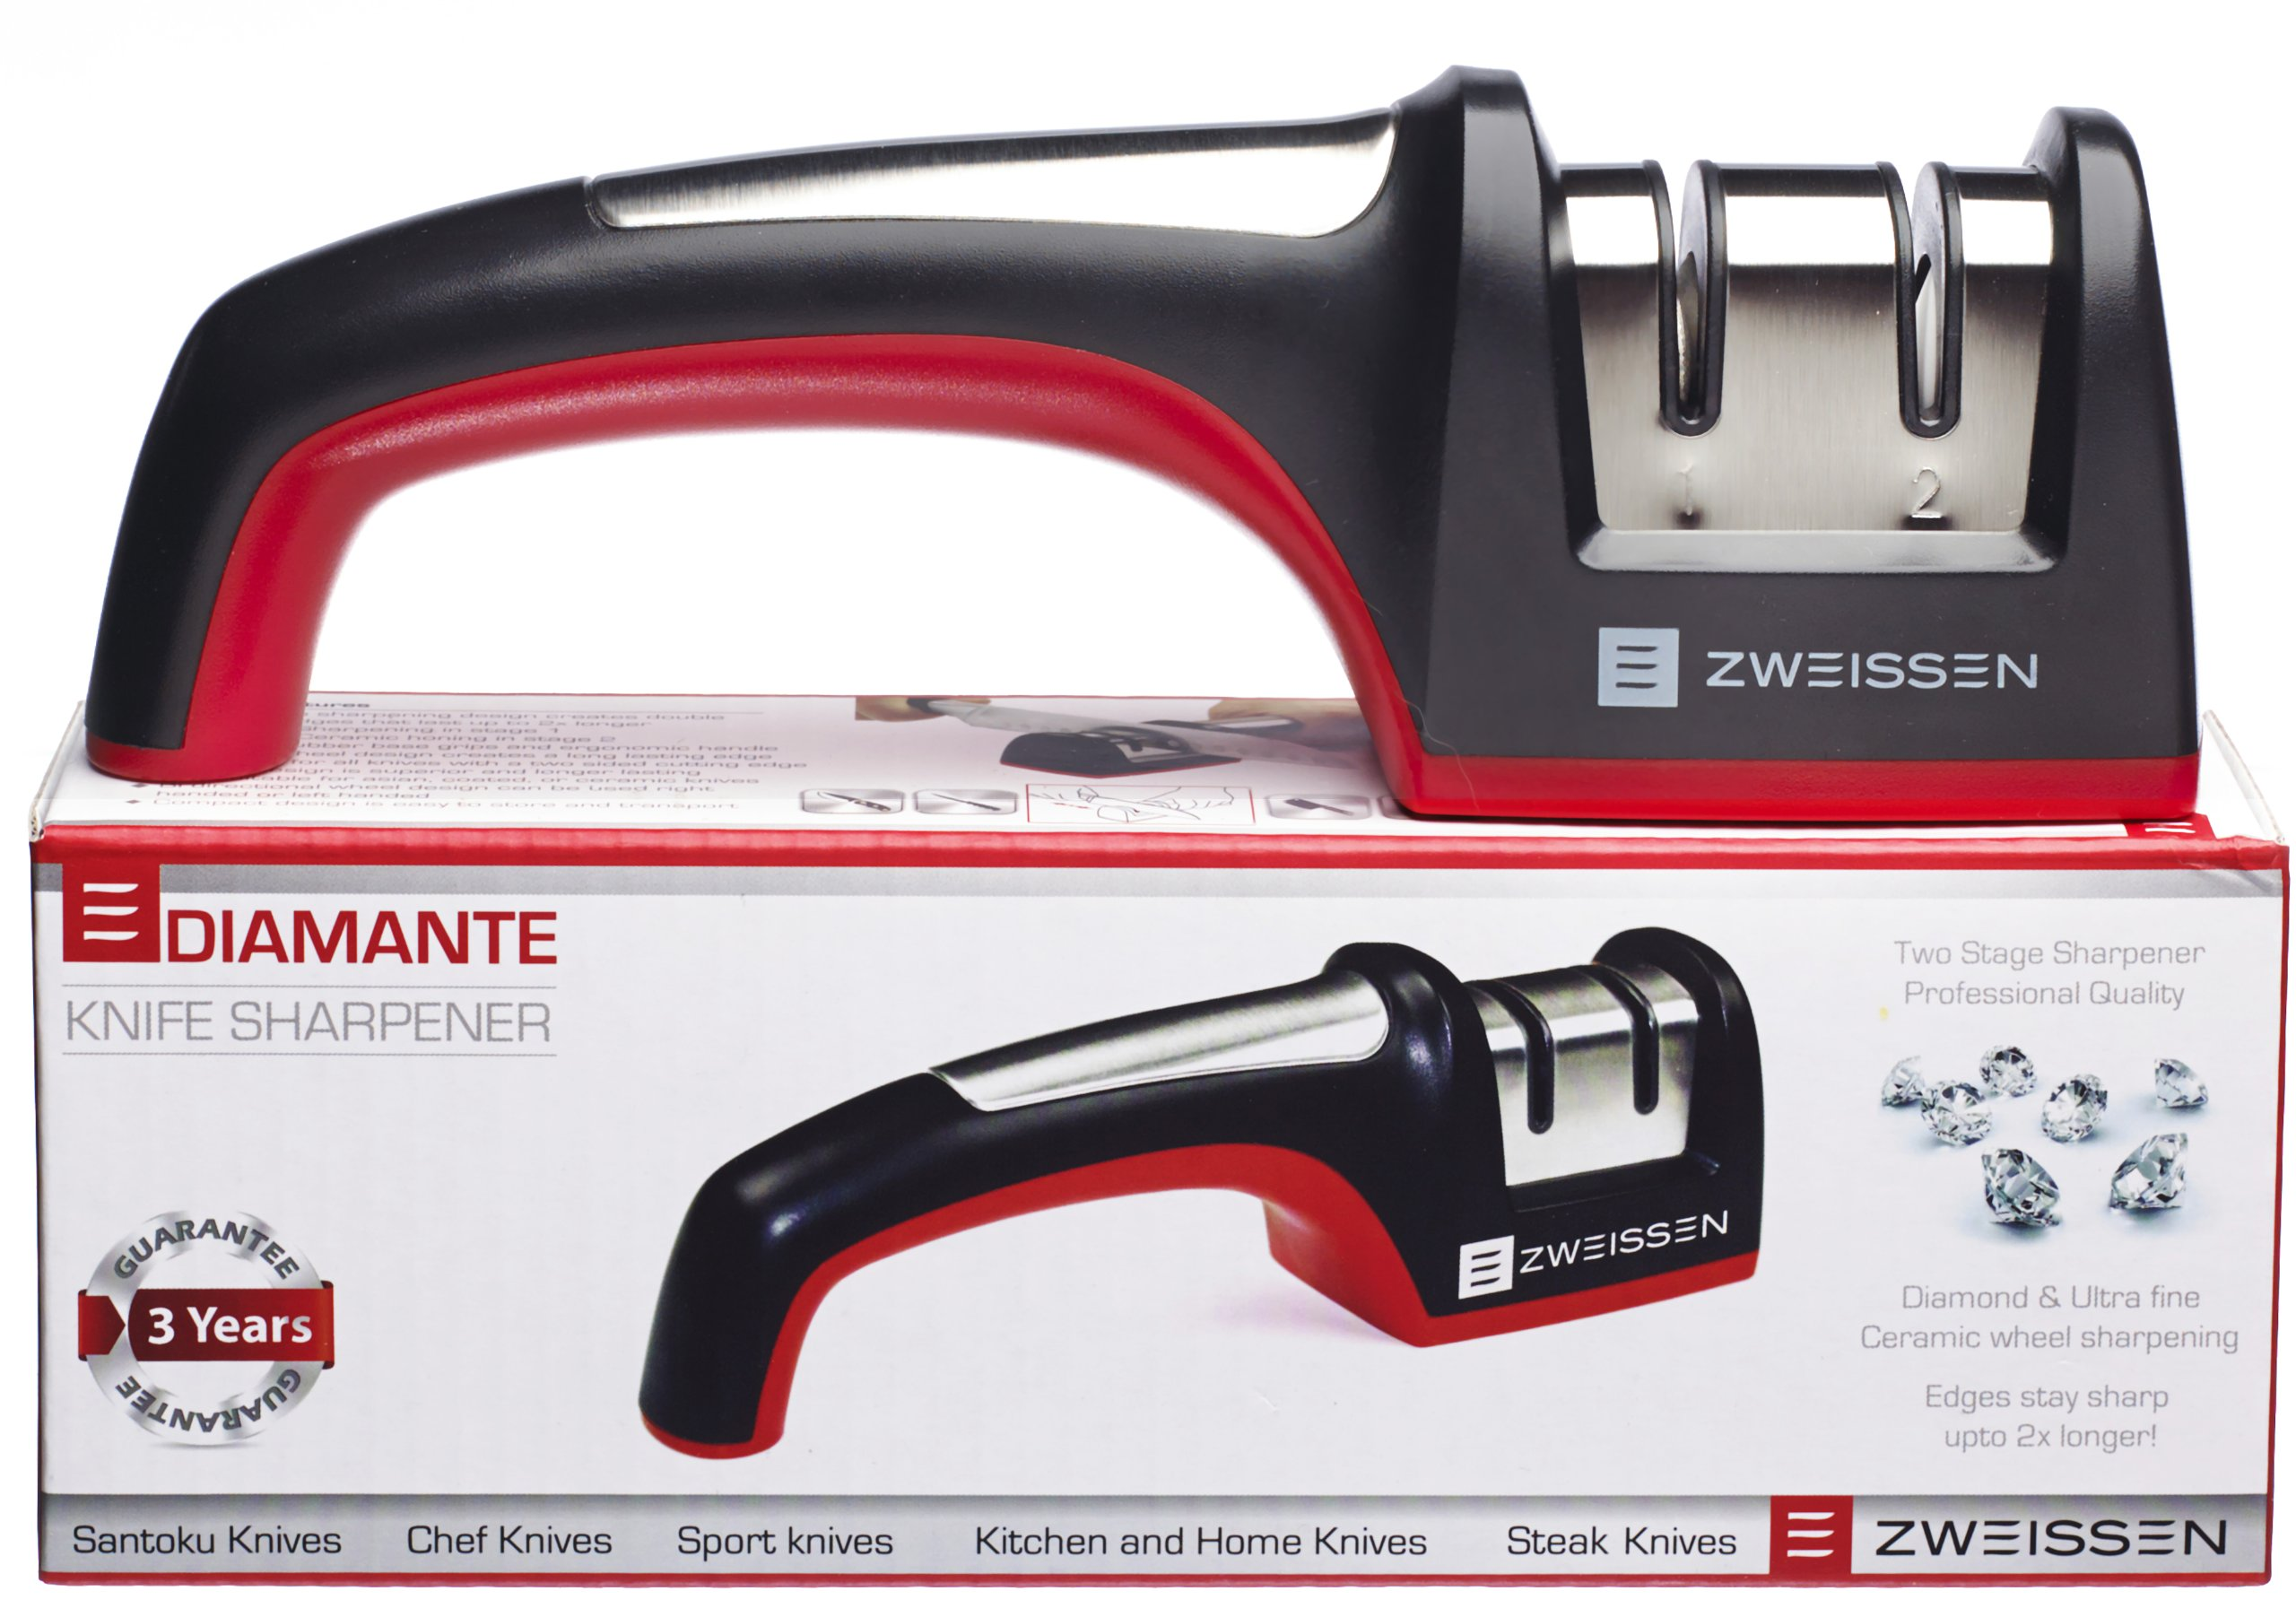 Zweissen Diamante 2-Stage Diamond Grit Knife Sharpener